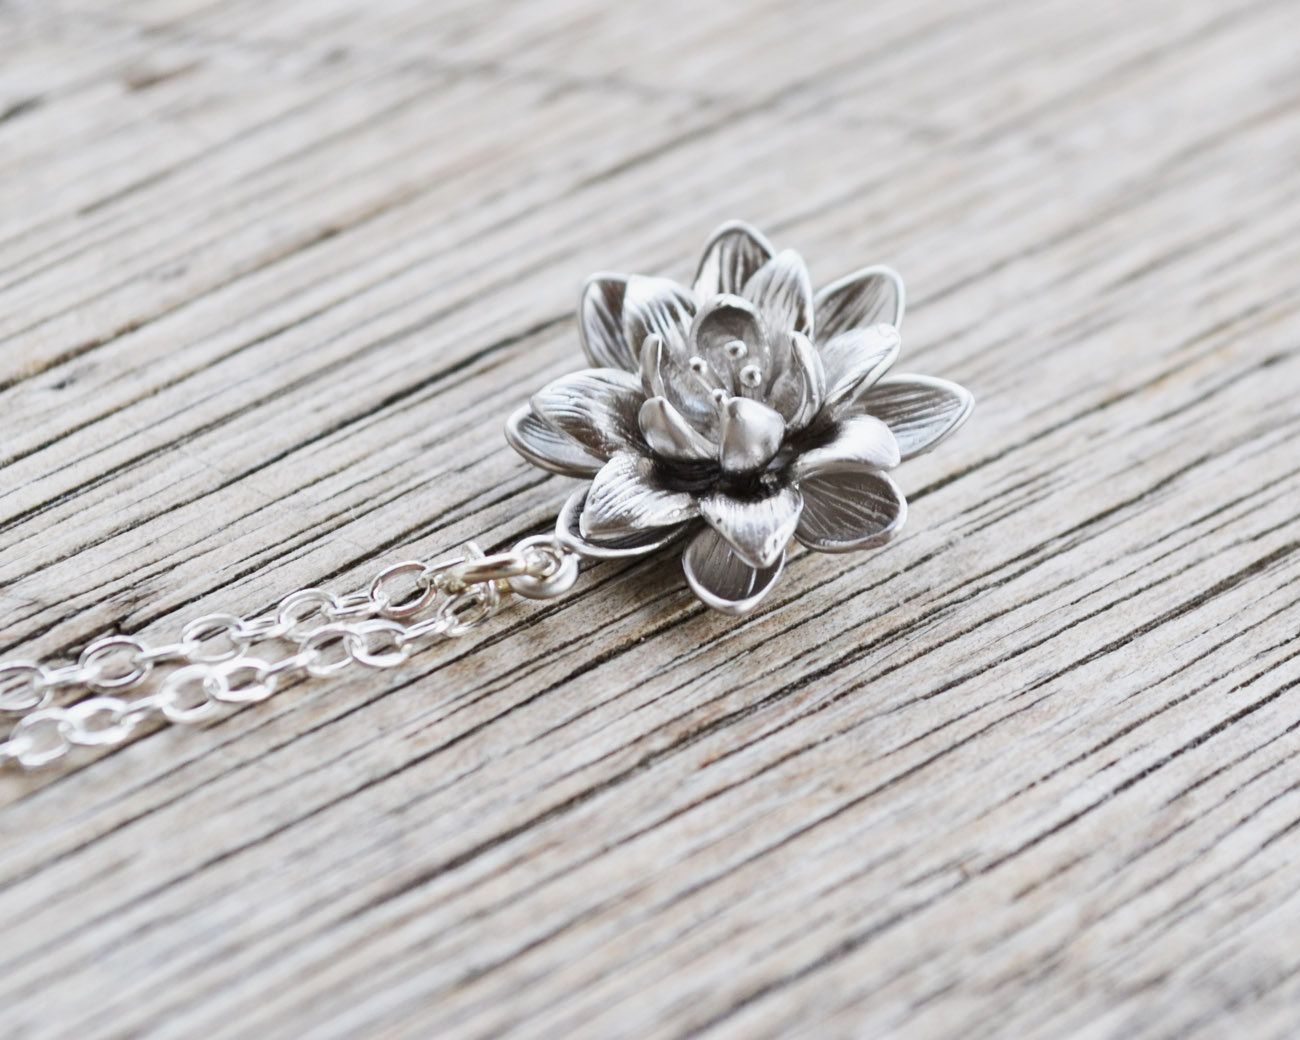 Silver lotus flower necklace sterling silver chain water lily silver lotus flower necklace sterling silver chain water lily flower pendant beauty life gift under 25 2500 usd by twistedsilverdesign izmirmasajfo